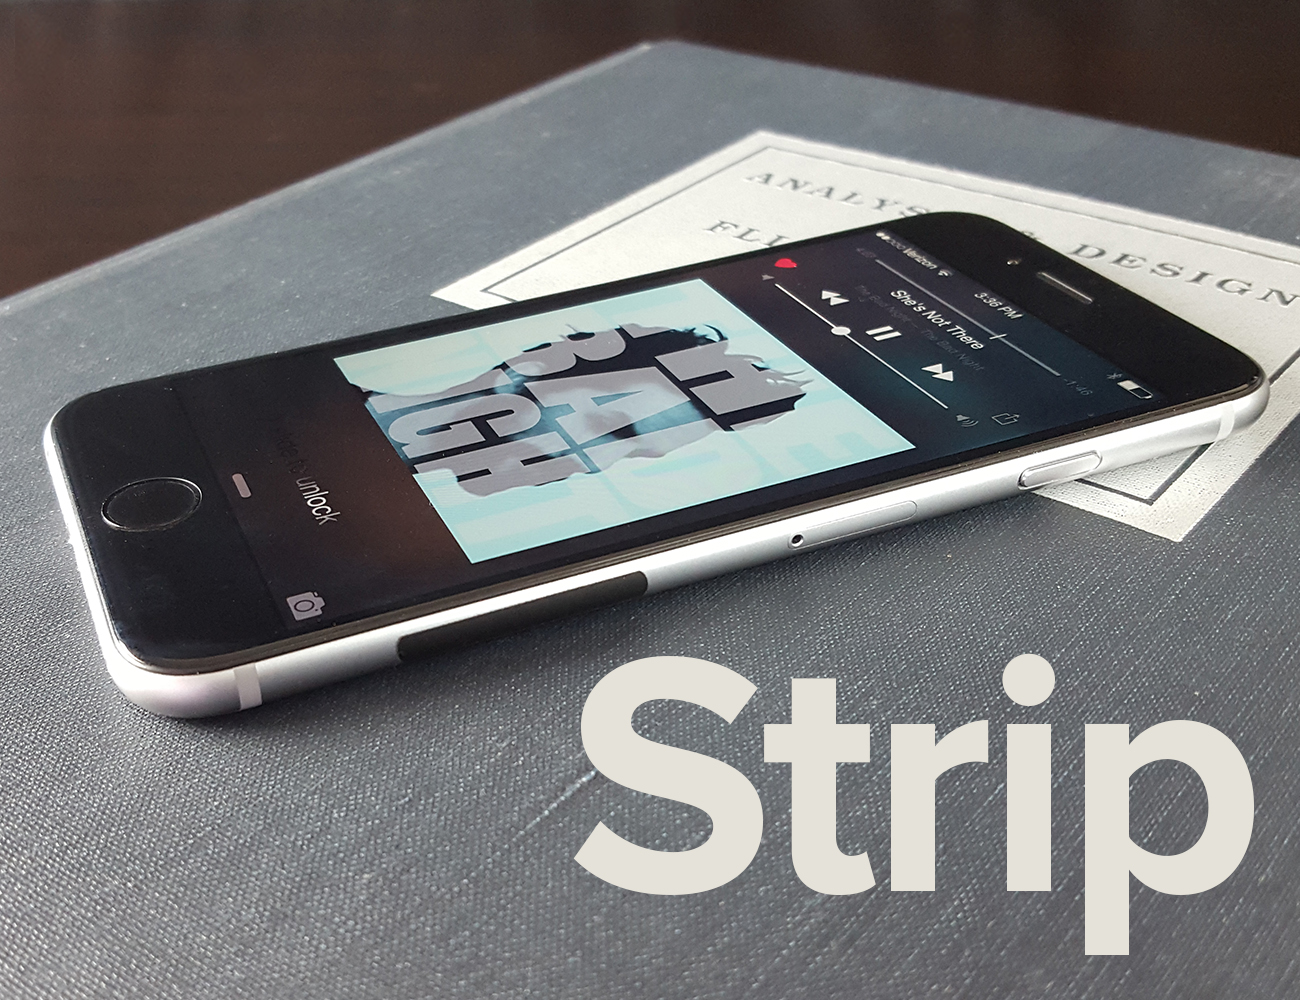 Strip – A Minimalist Solution for Slippery Premium Phones